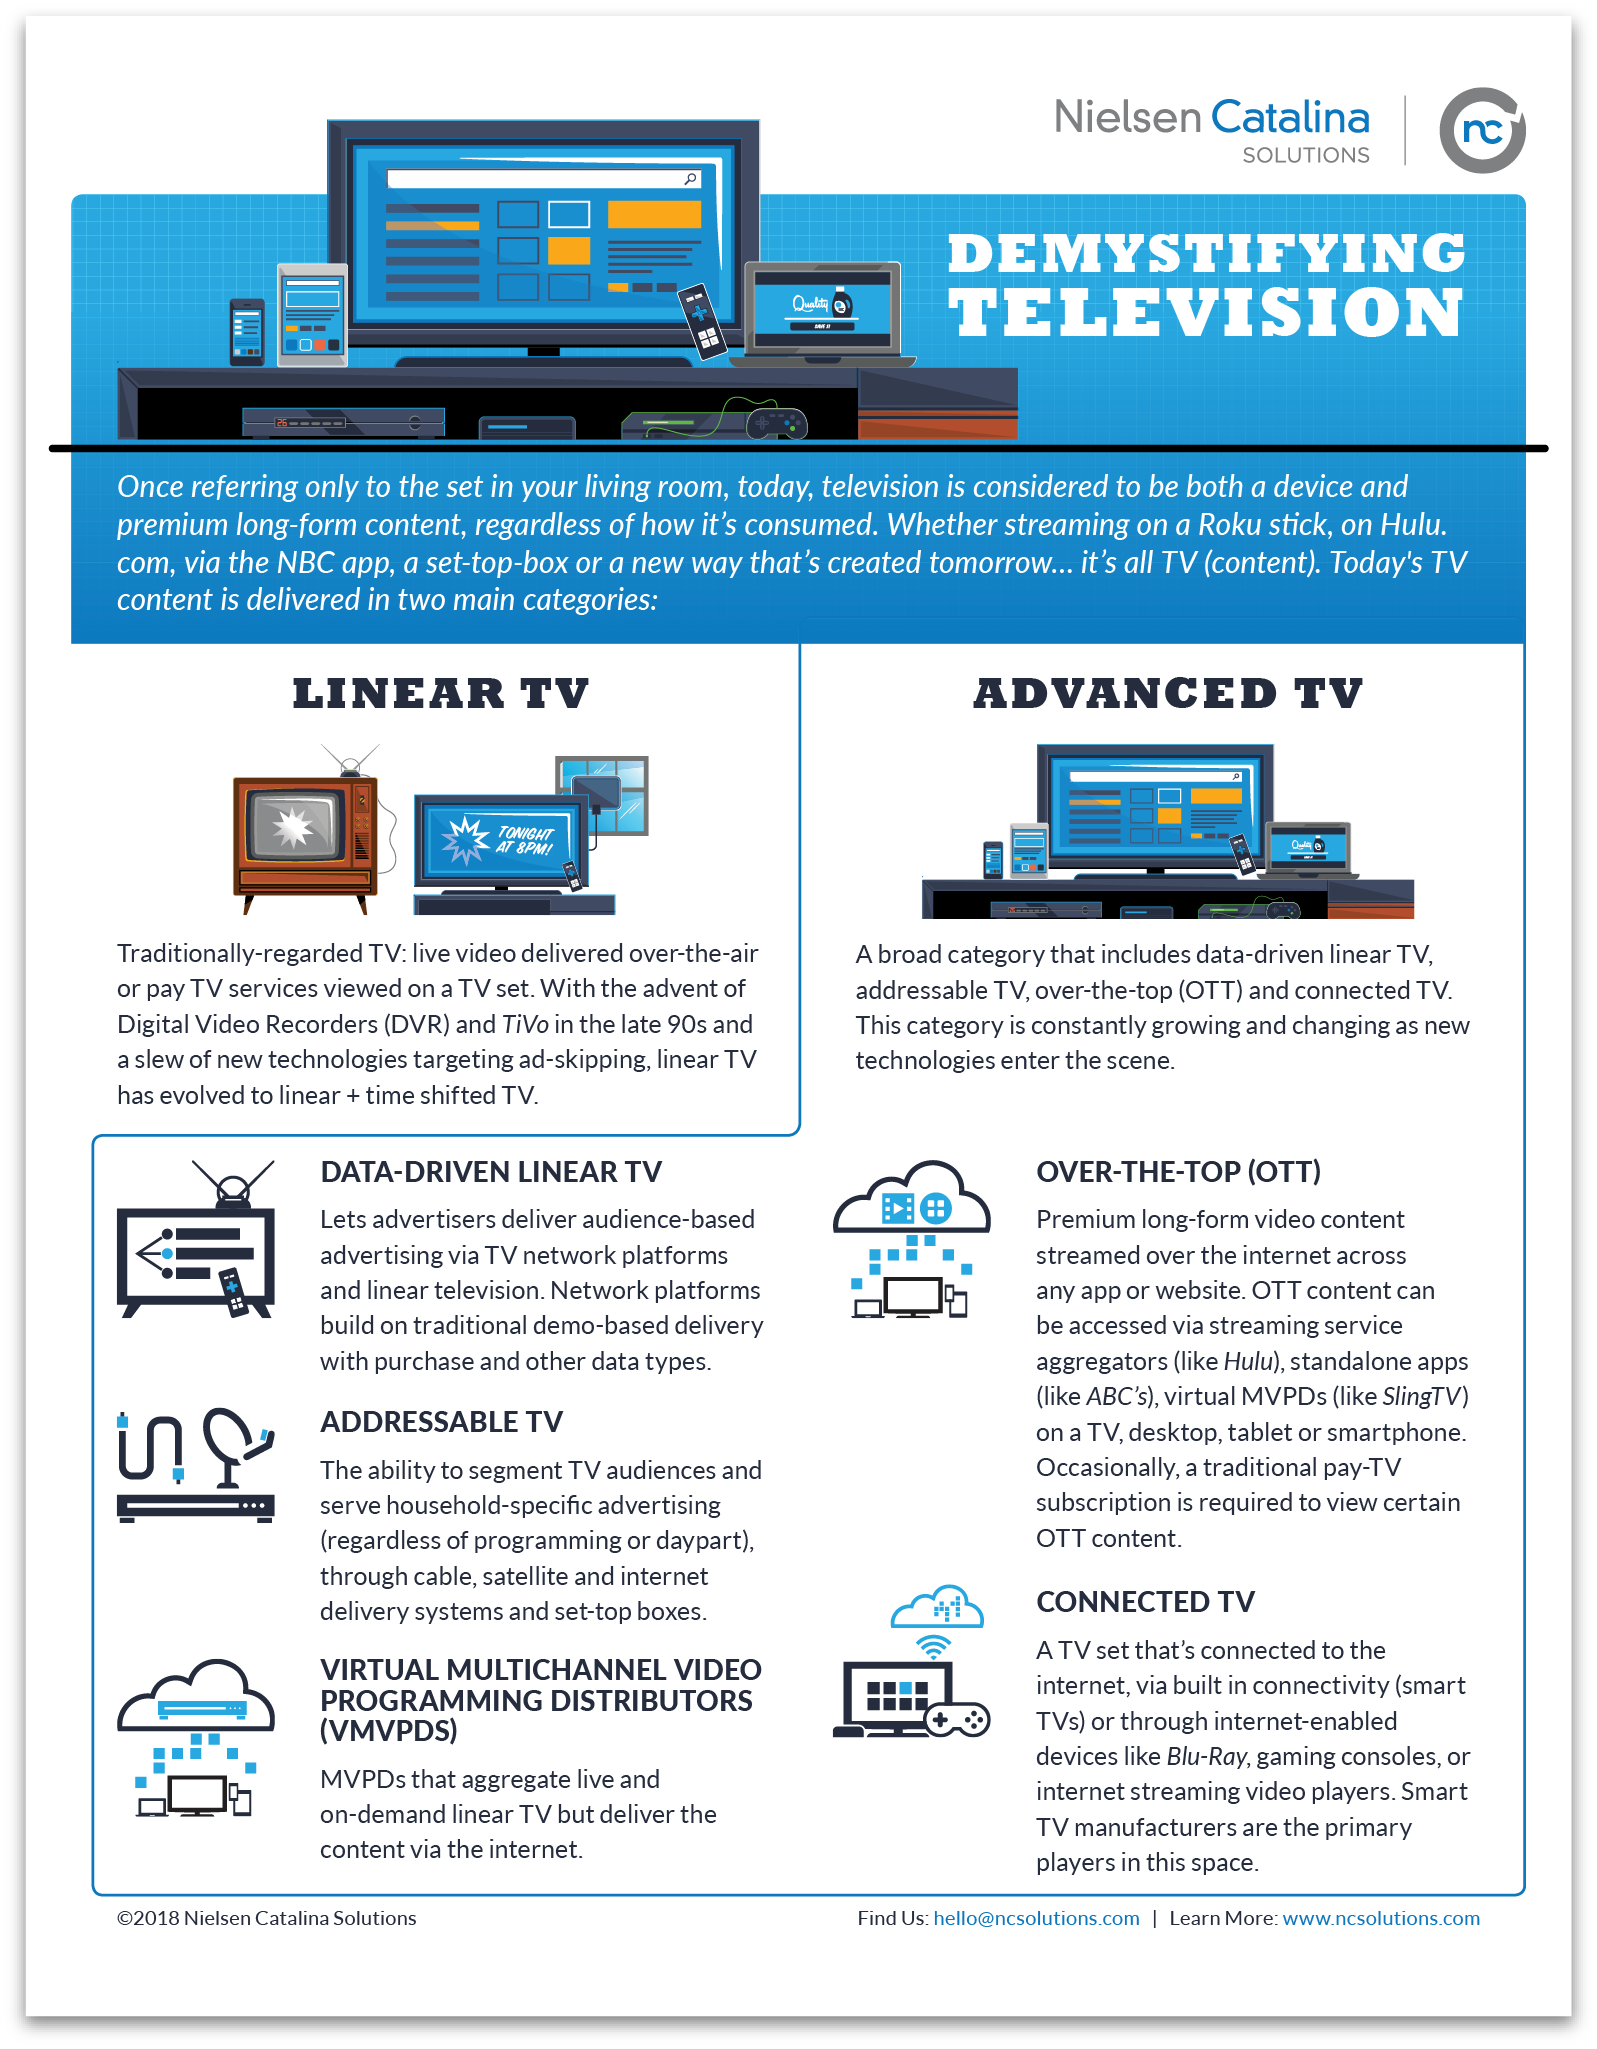 Infographic - An instructional breakdown of Advanced TV terminology